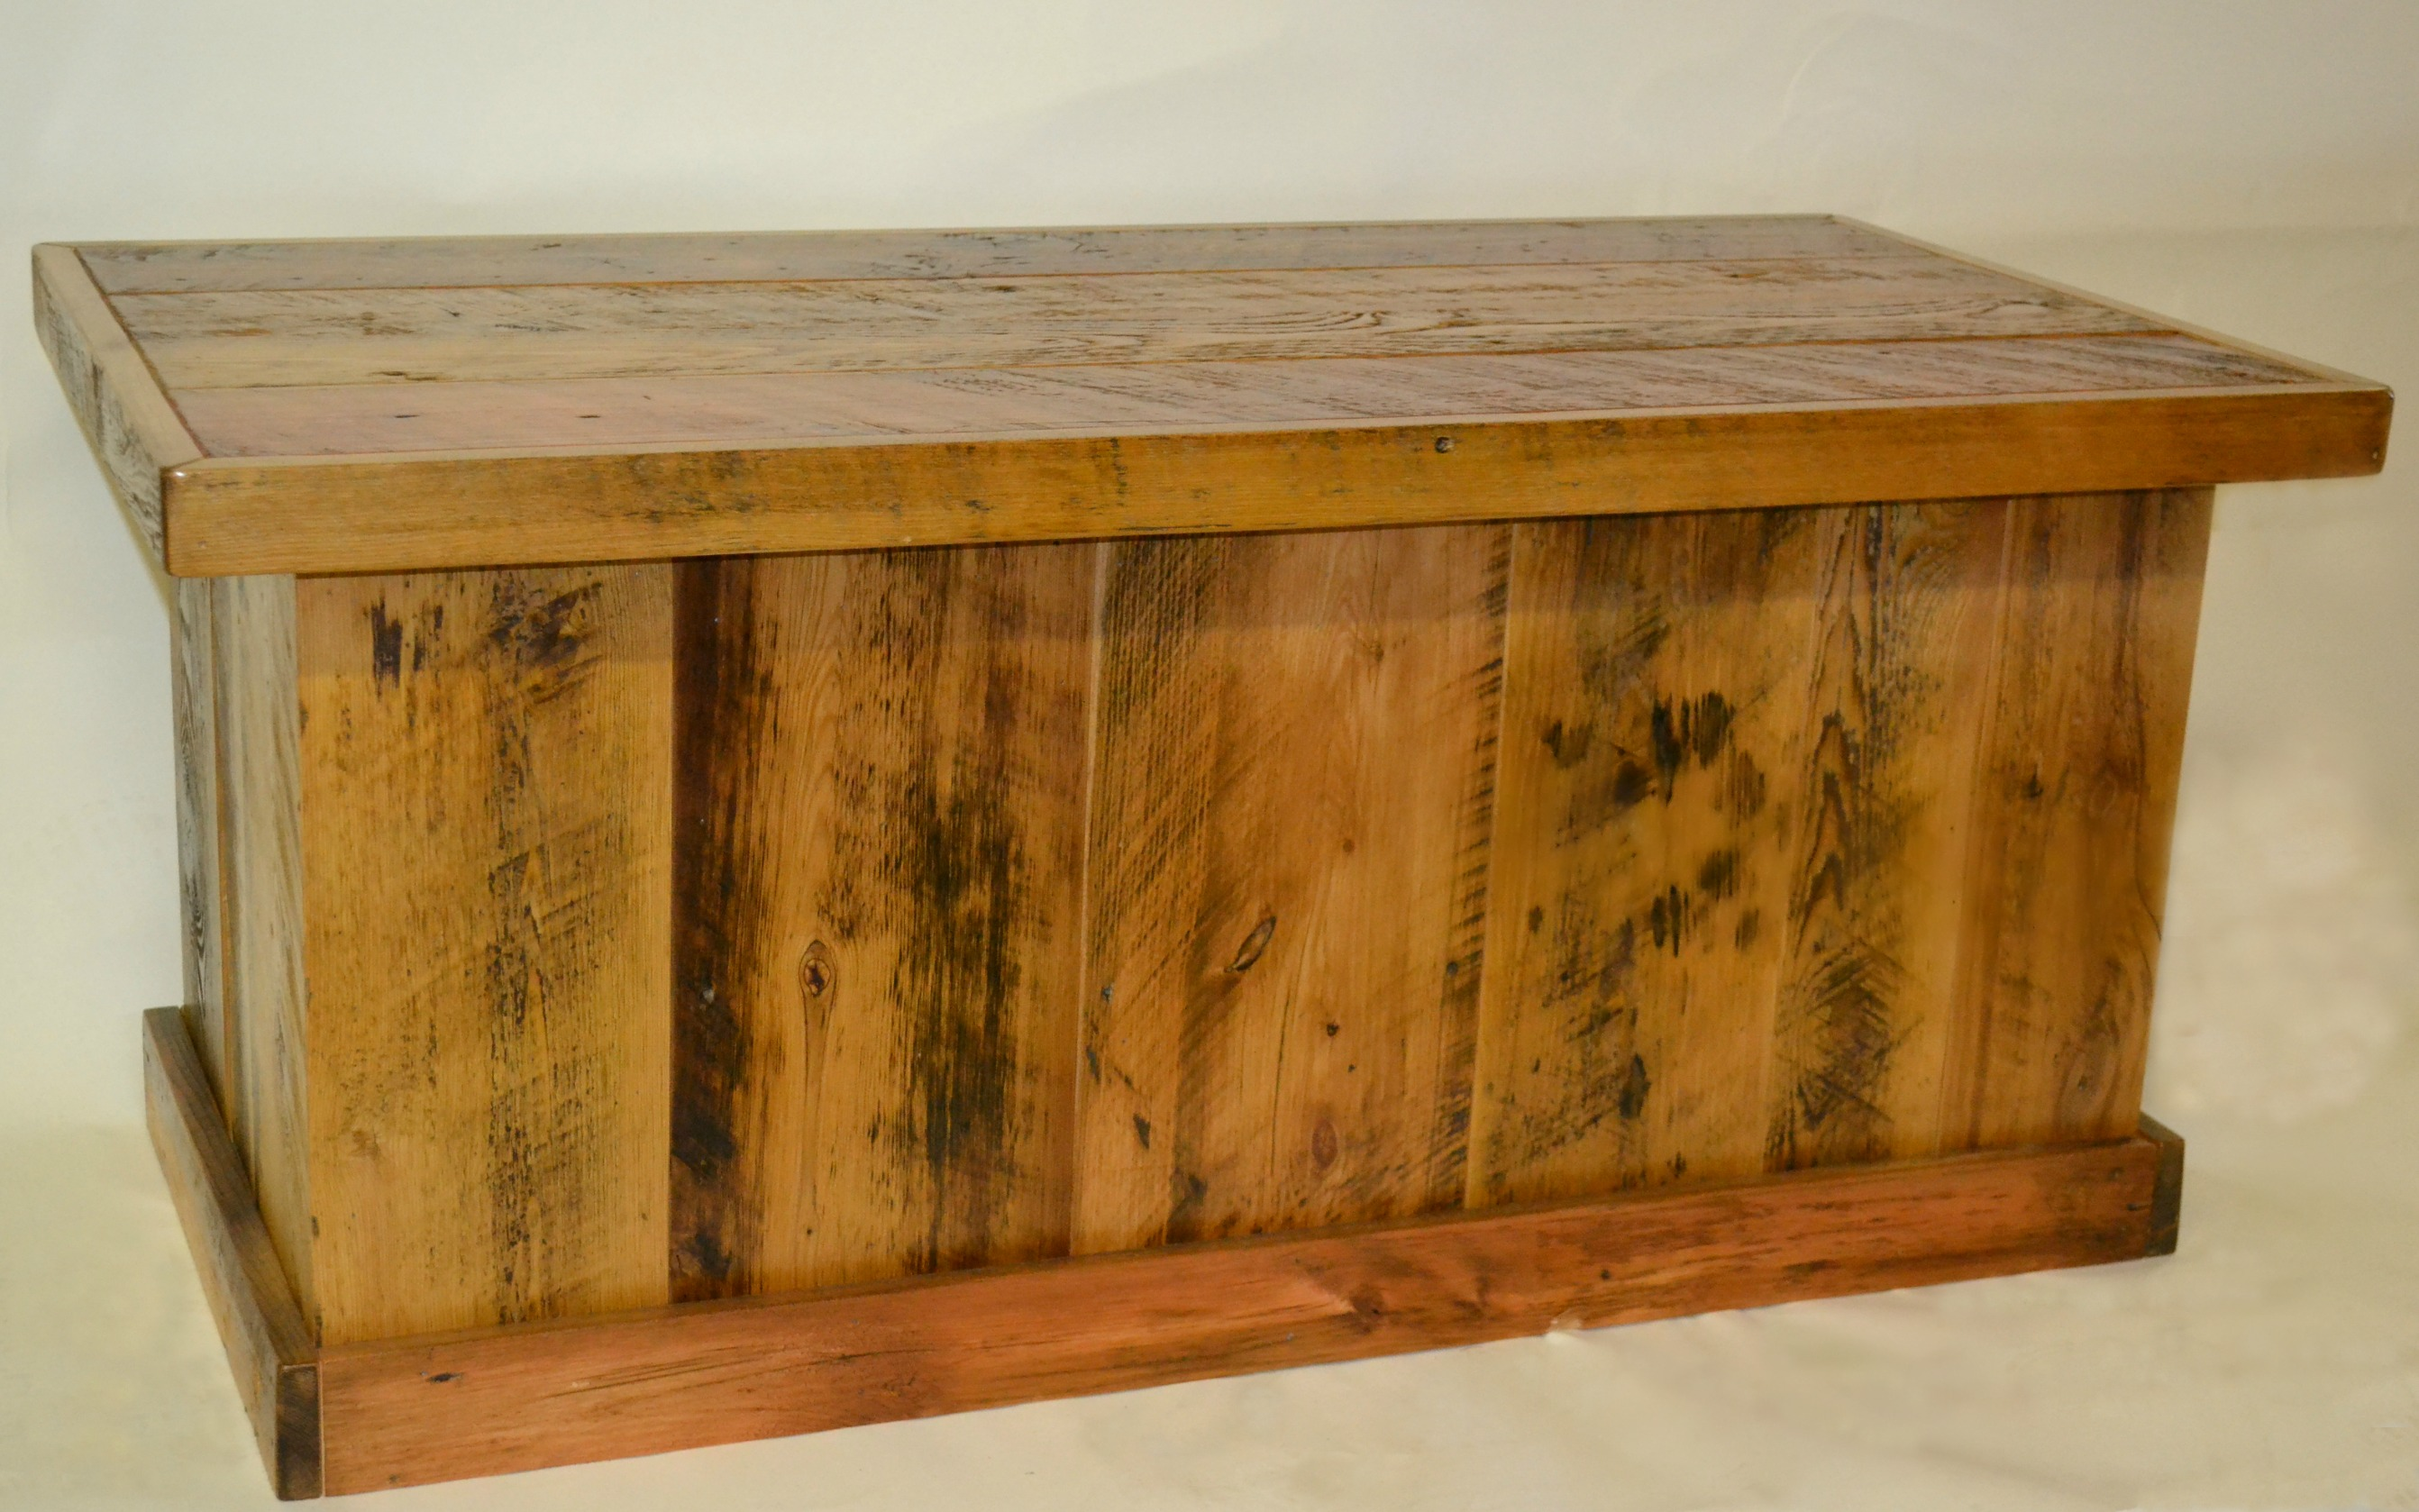 Barnwood Trunk Blanket Chest Coffee Table Rustic Furniture Mall By Timber Creek